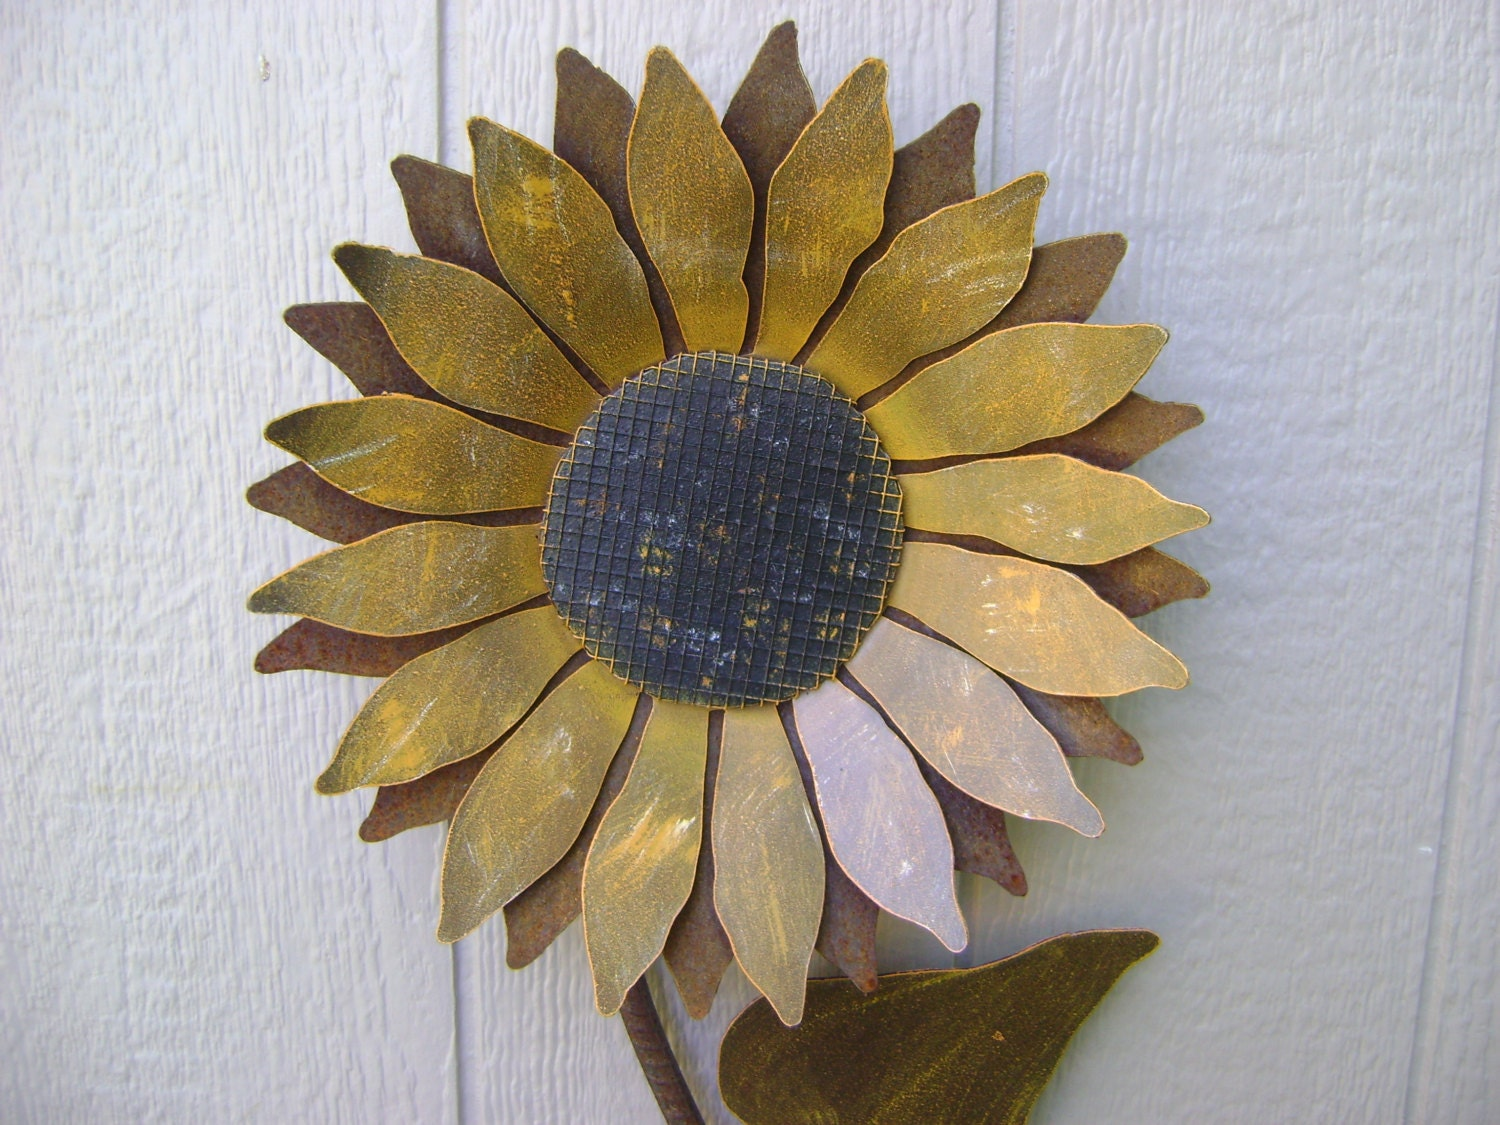 Metal Flower Wall Hanging Sunflower Metal Garden Art Sunflower Wall Art Rusty Metal